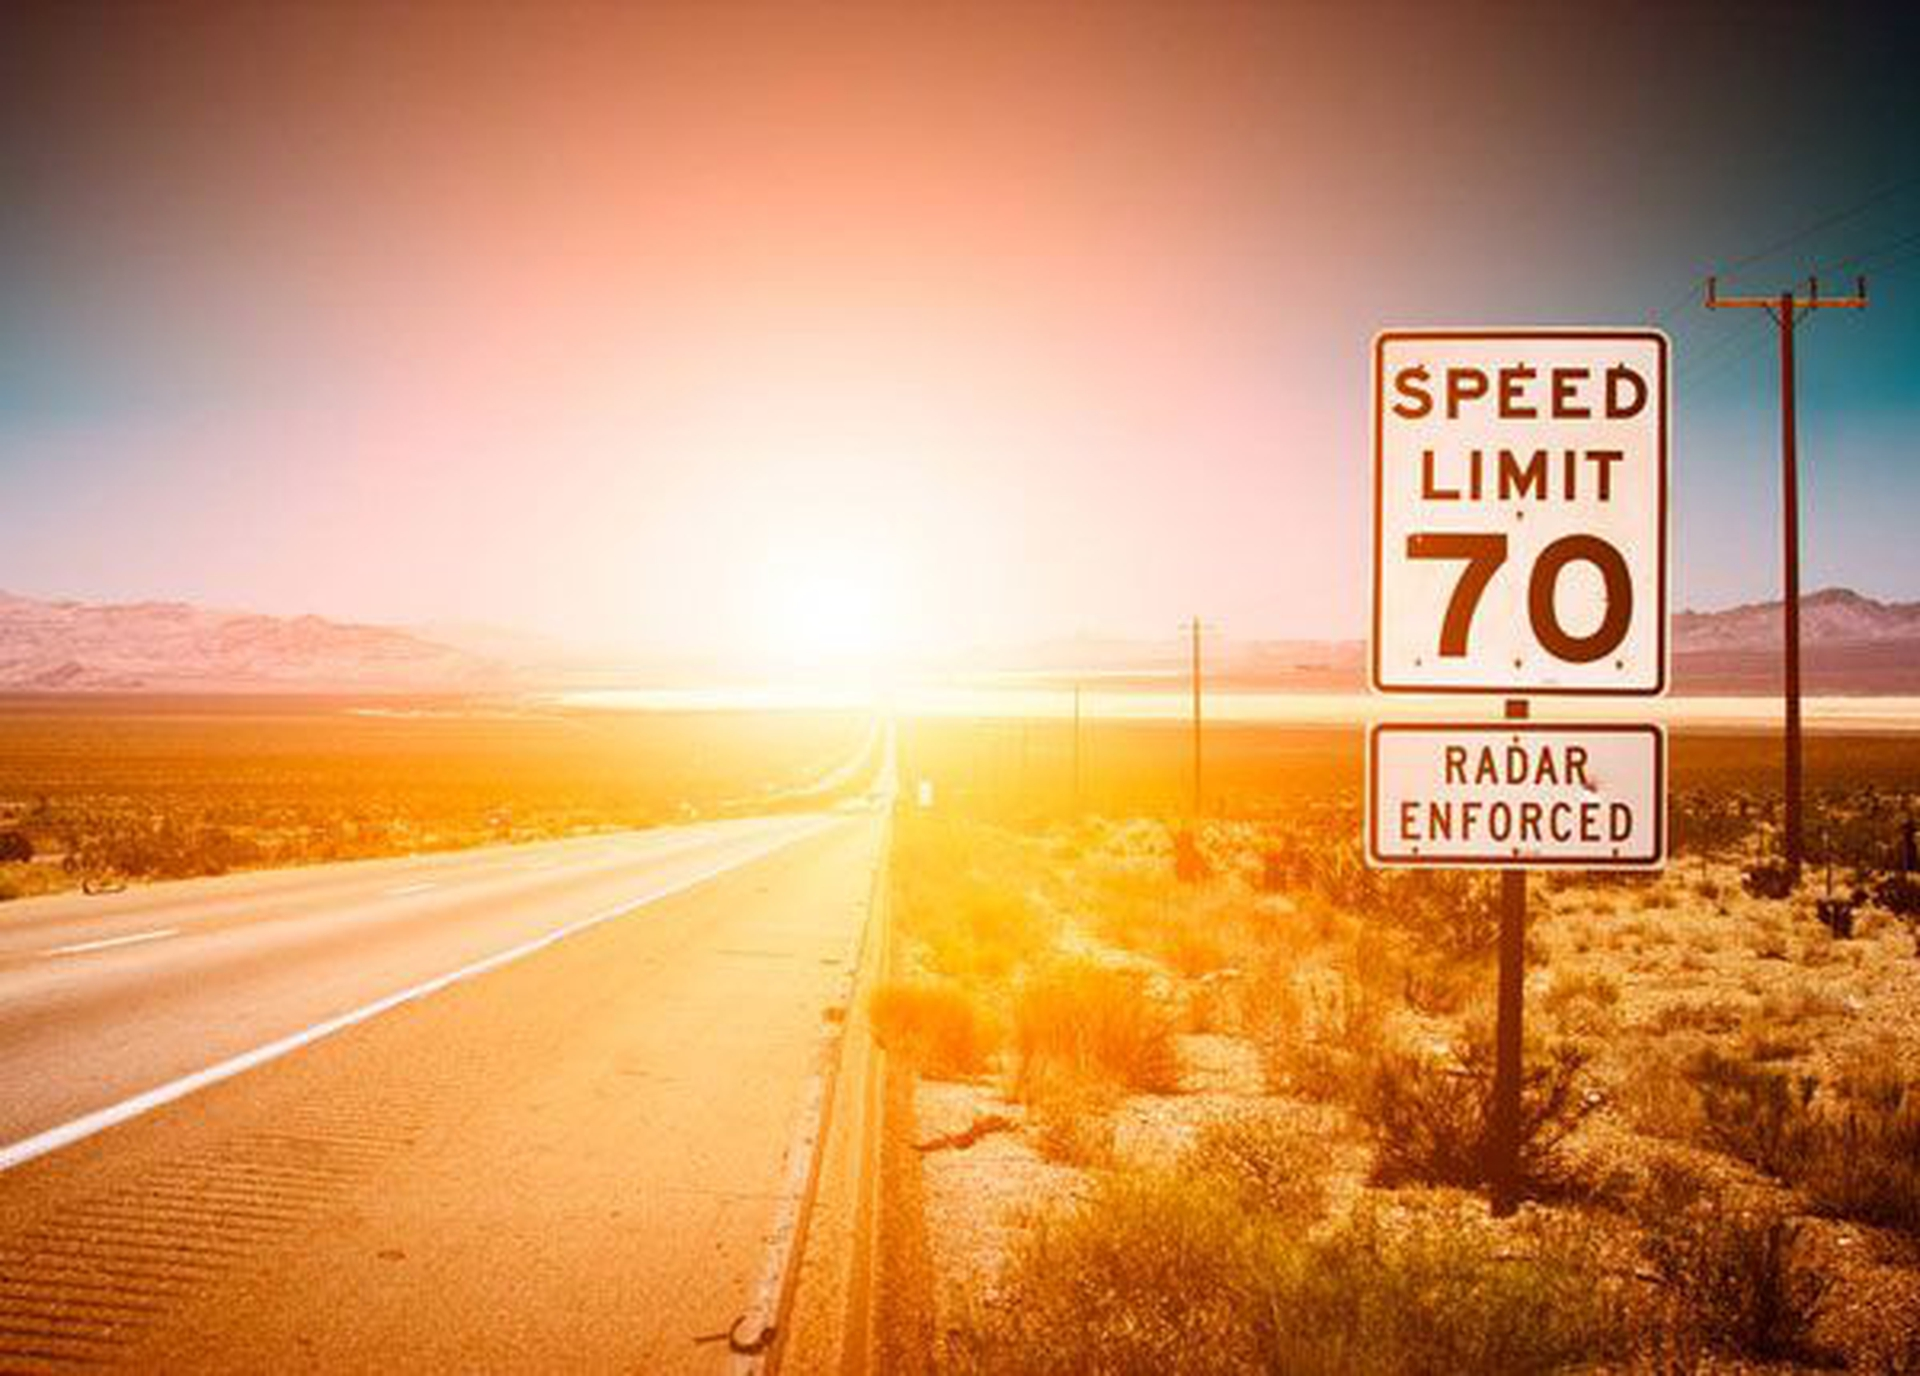 Speed Laws, Rules & Regulations